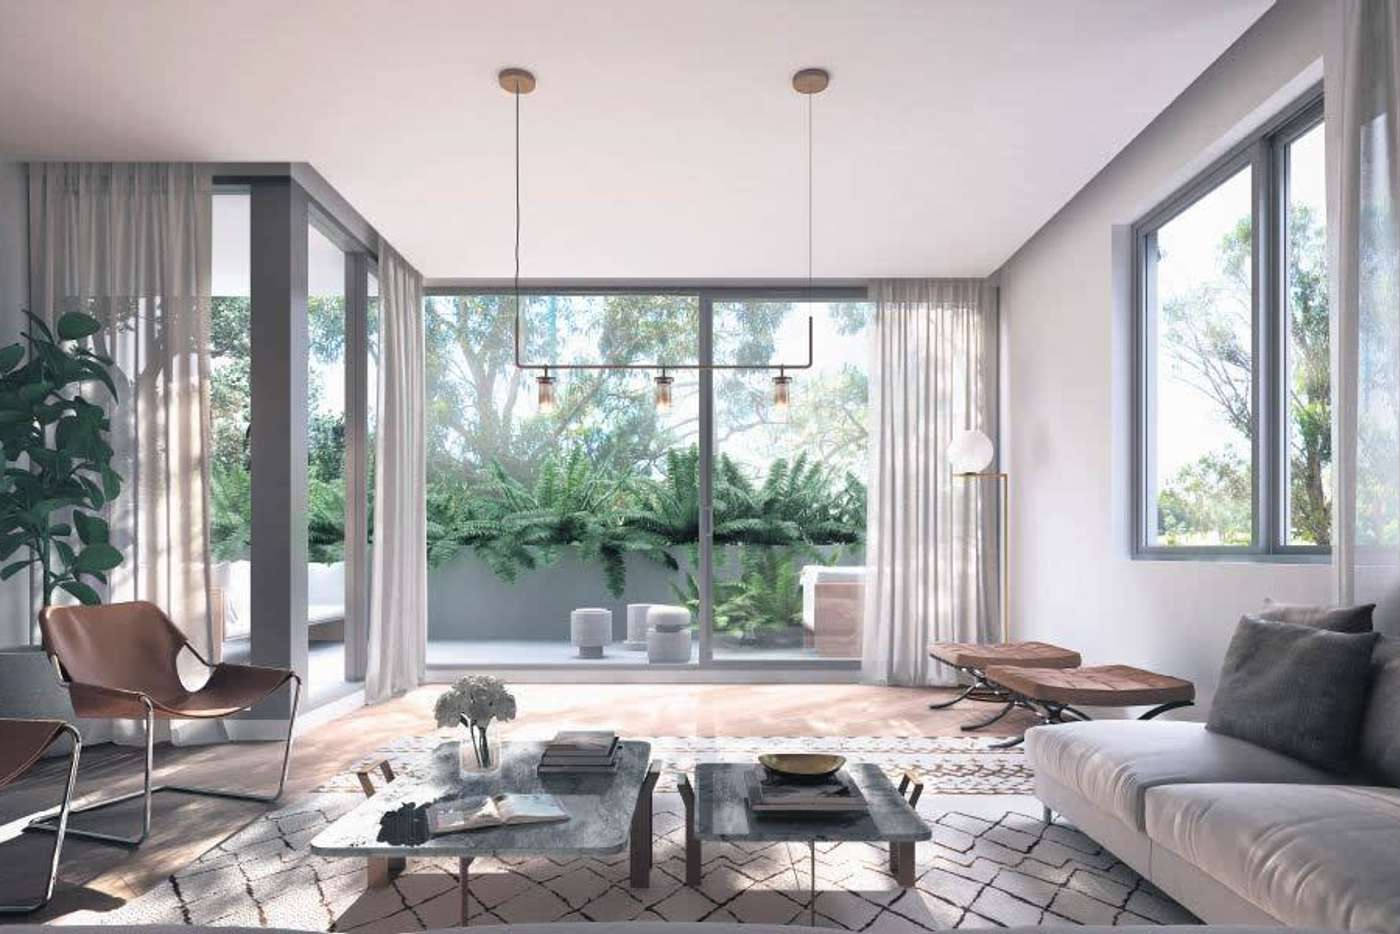 Main view of Homely apartment listing, 499 St Kilda Road, Melbourne VIC 3000